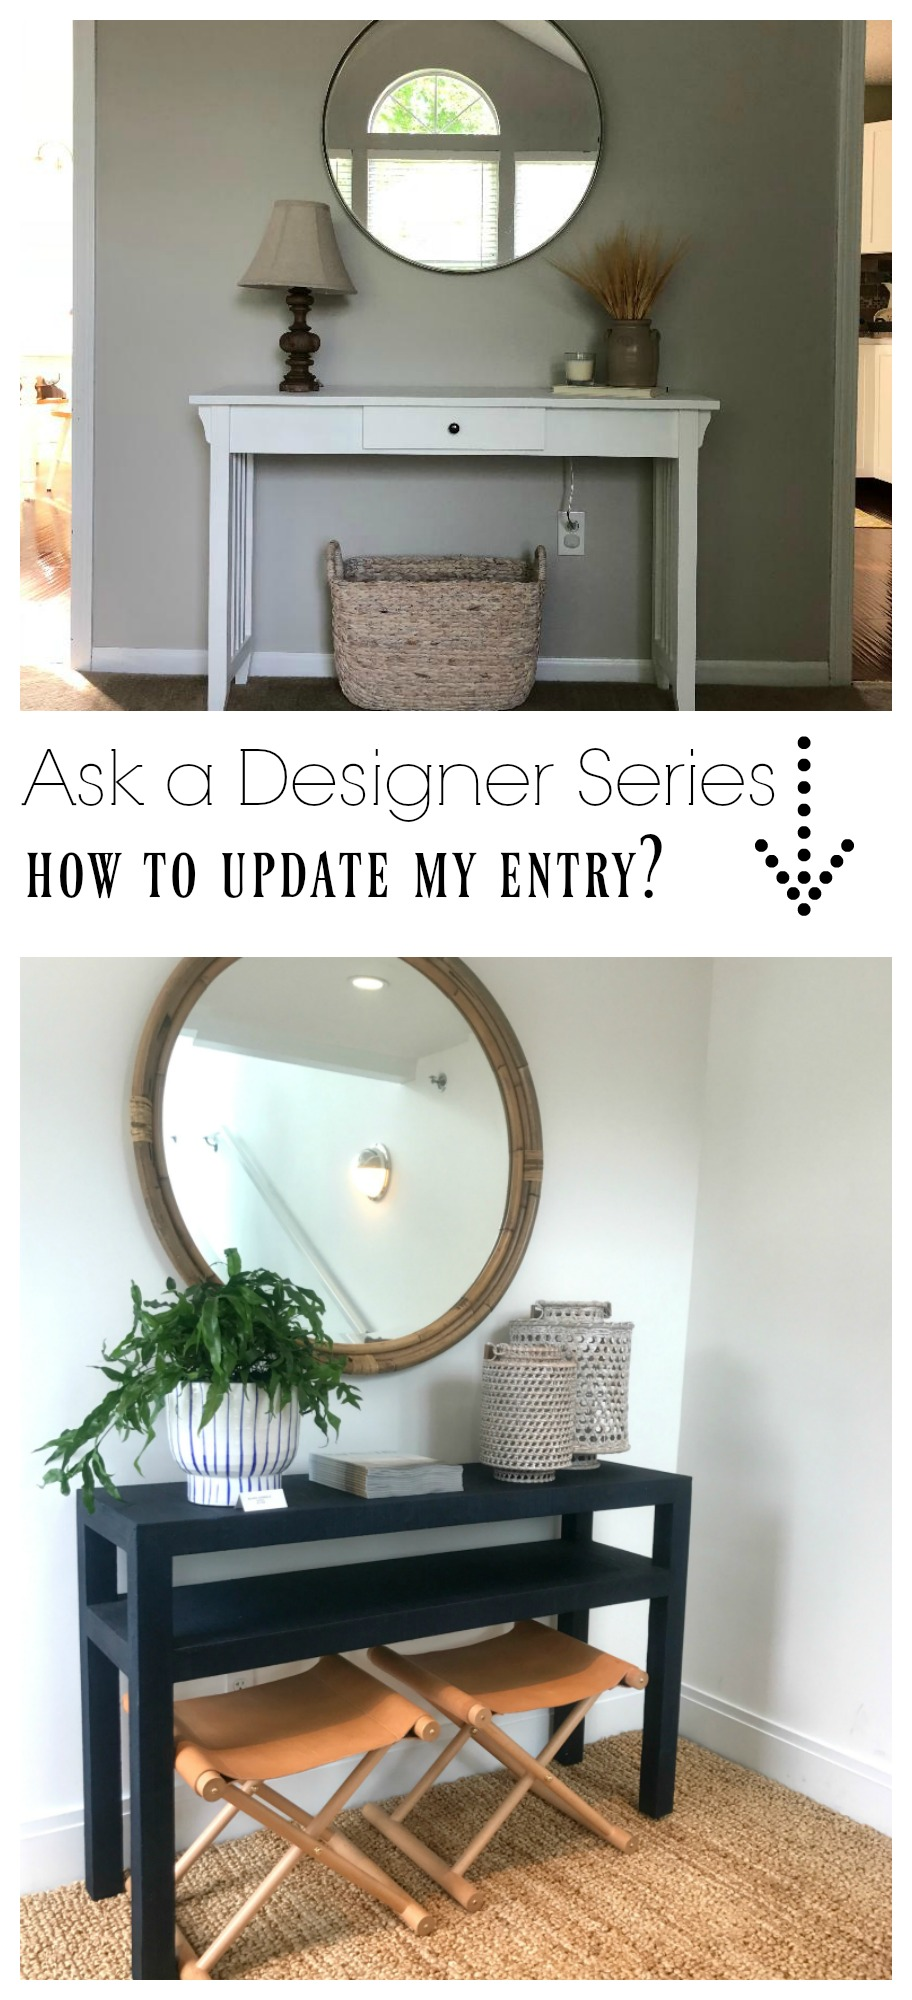 Ask a Designer Series- How to update my Entry?